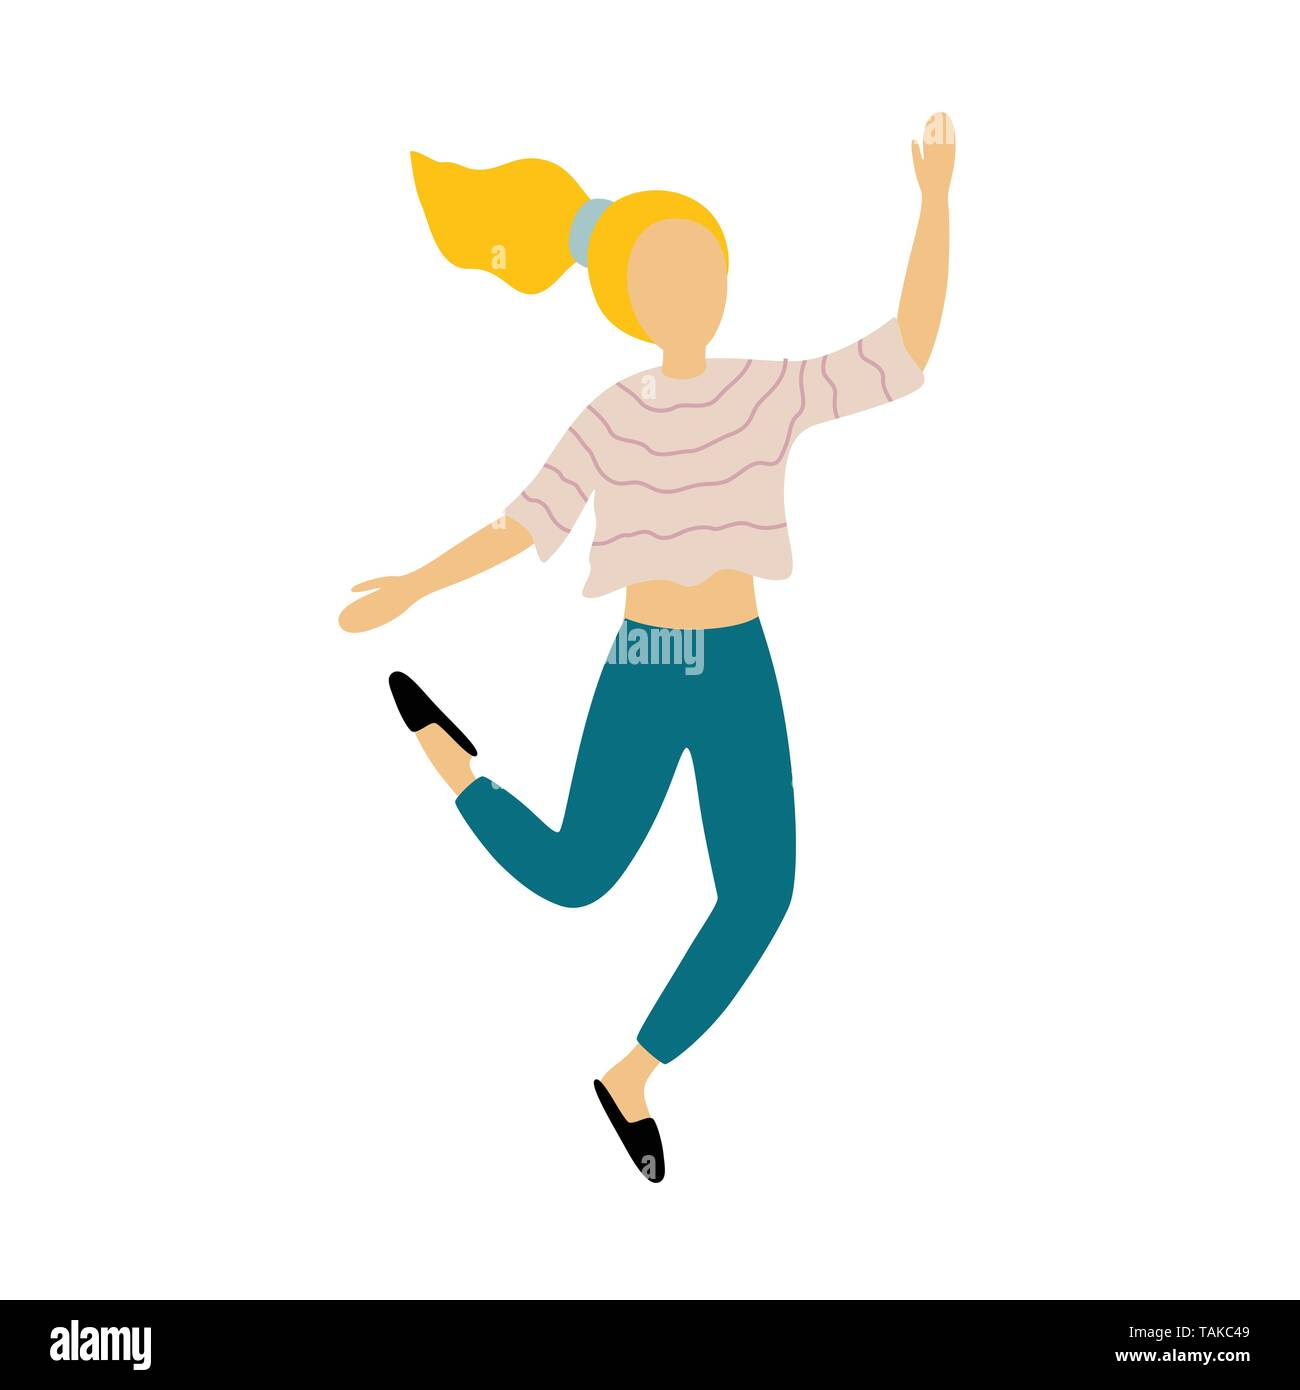 The girl rejoices and jumps. Dancing woman. Vector illustration on white isolated background - Stock Image